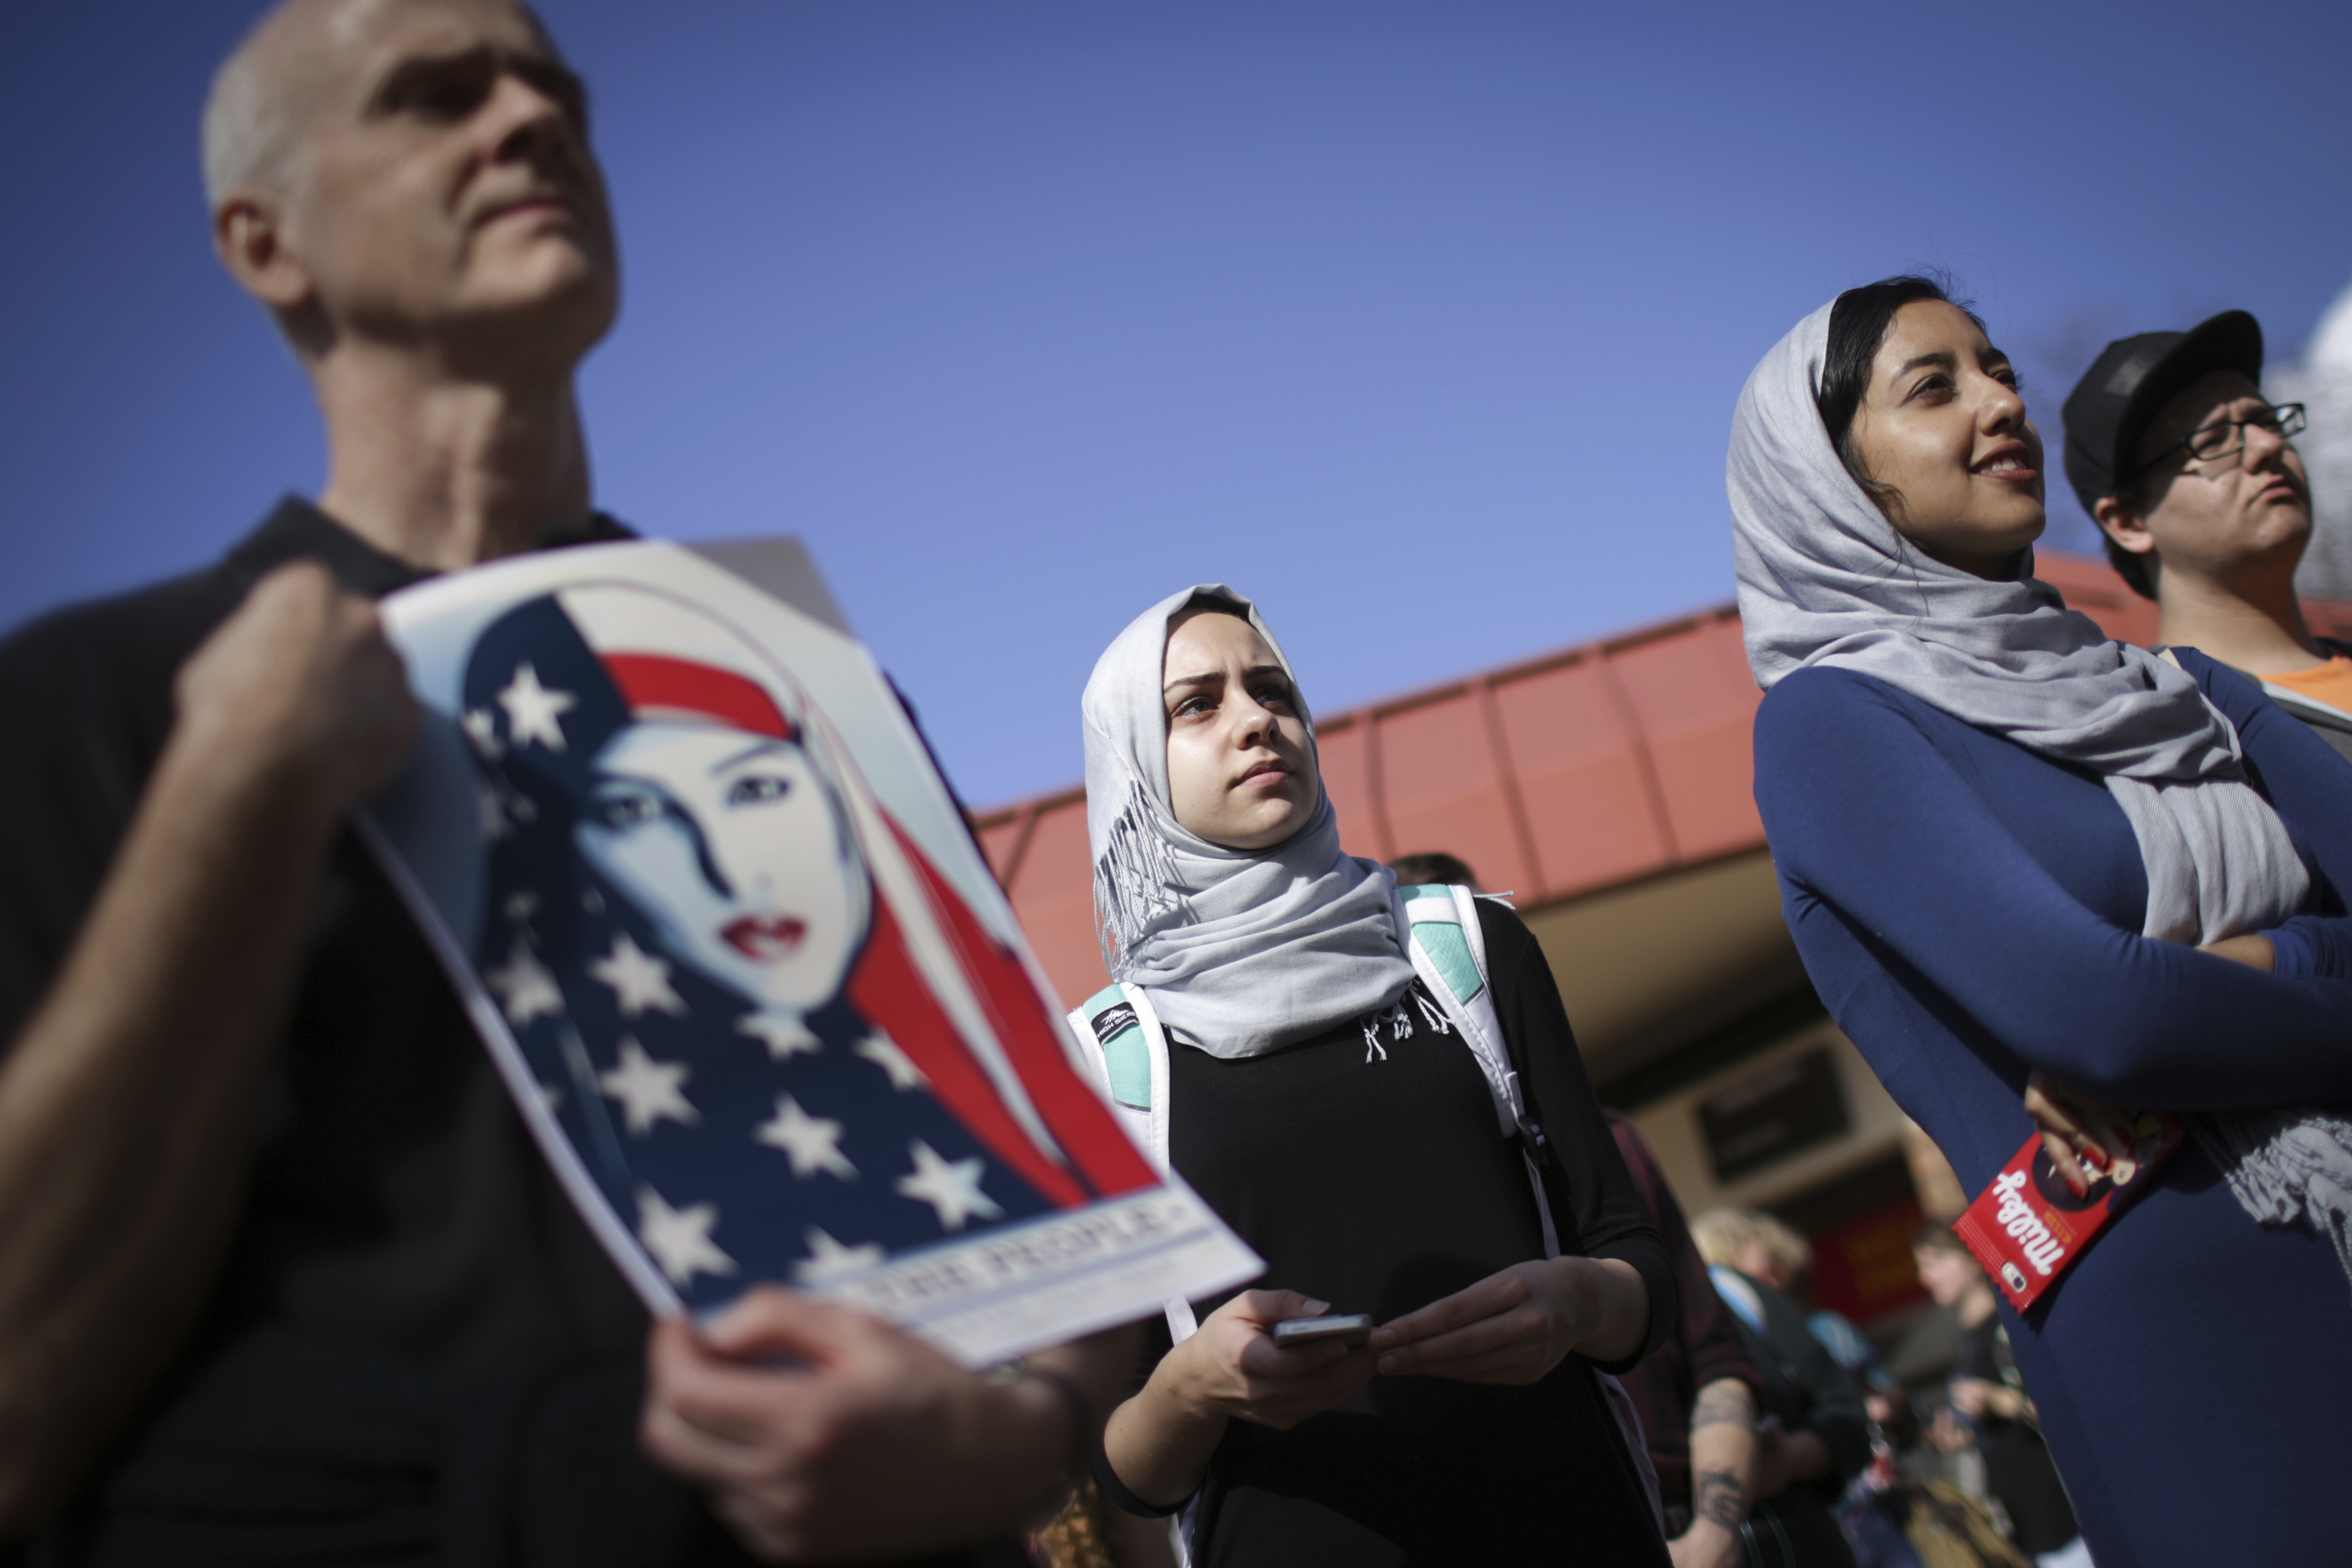 """Mae Eldahshoury, center, looks on as speakers voice concerns about President Trump's policies and potentially discriminatory practices at the University of Georgia, Friday, January 20, 2017. Eldahshoury, of the Muslim Student Alliance, came to the rally because of """"Trump's rhetoric to ban muslims"""" and show support for everyone that may feel afraid. (John Roark/Athens Banner-Herald via AP)"""